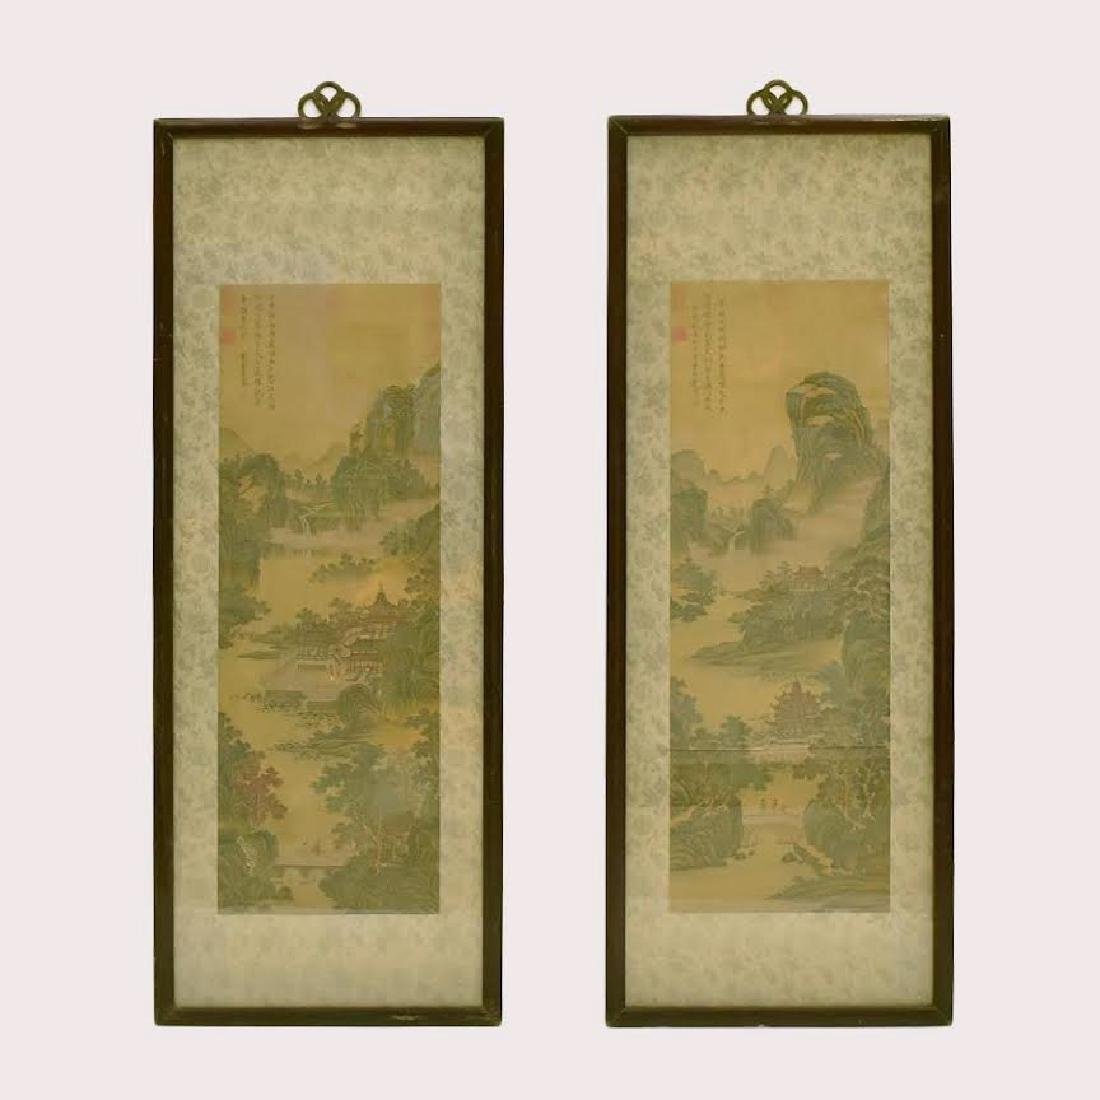 SET OF 2 FRAMED CHINESE PAINTINGS OF PAVILIONS